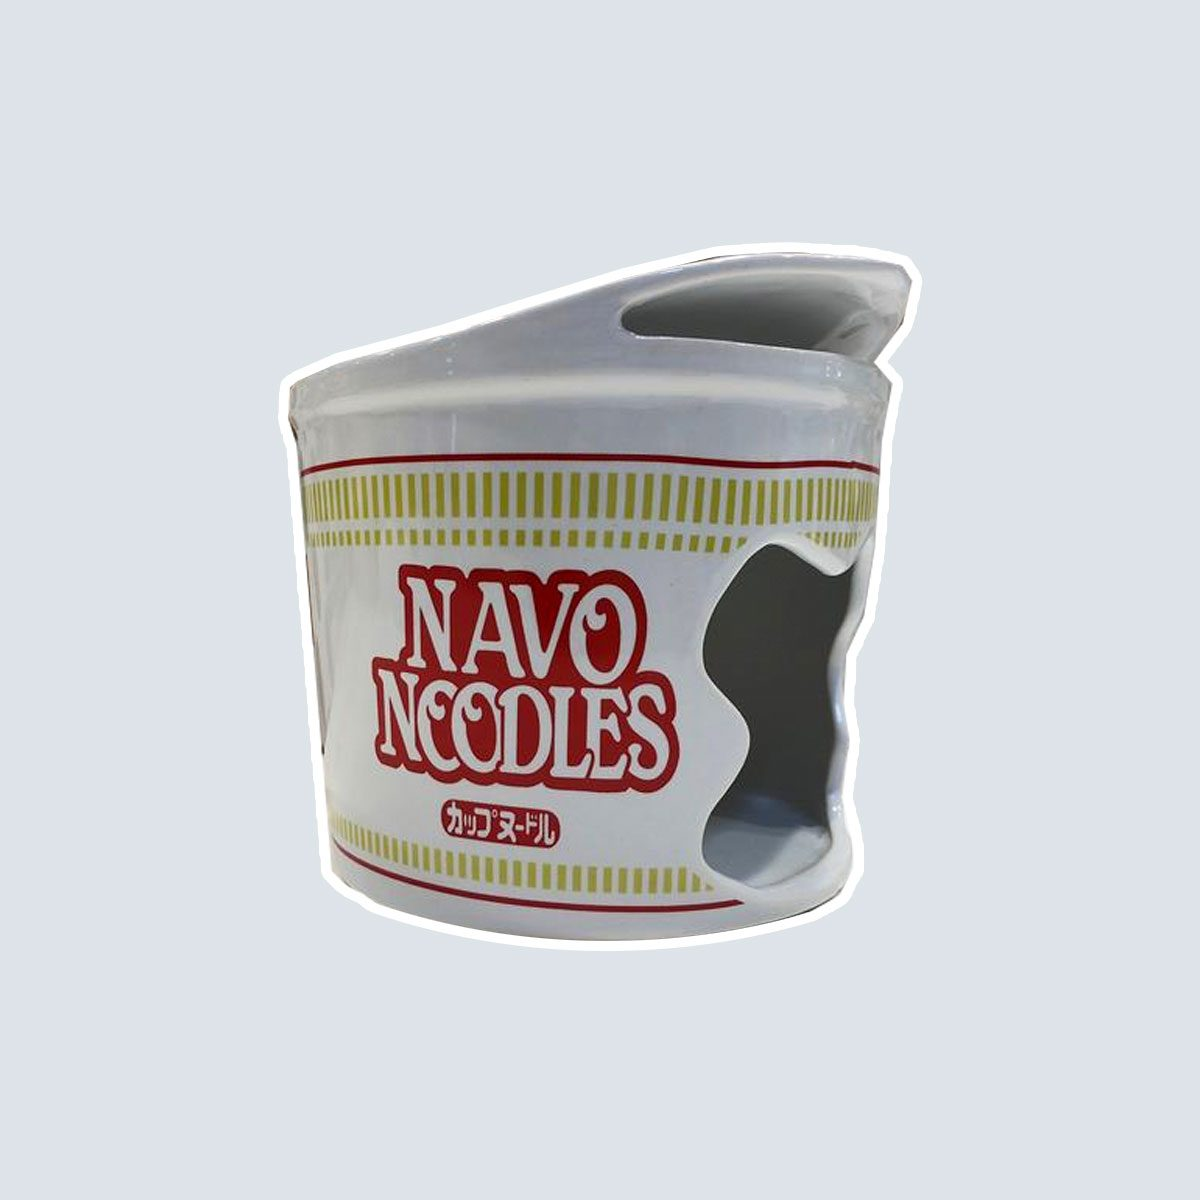 Navo Noodles Hamster Hideout